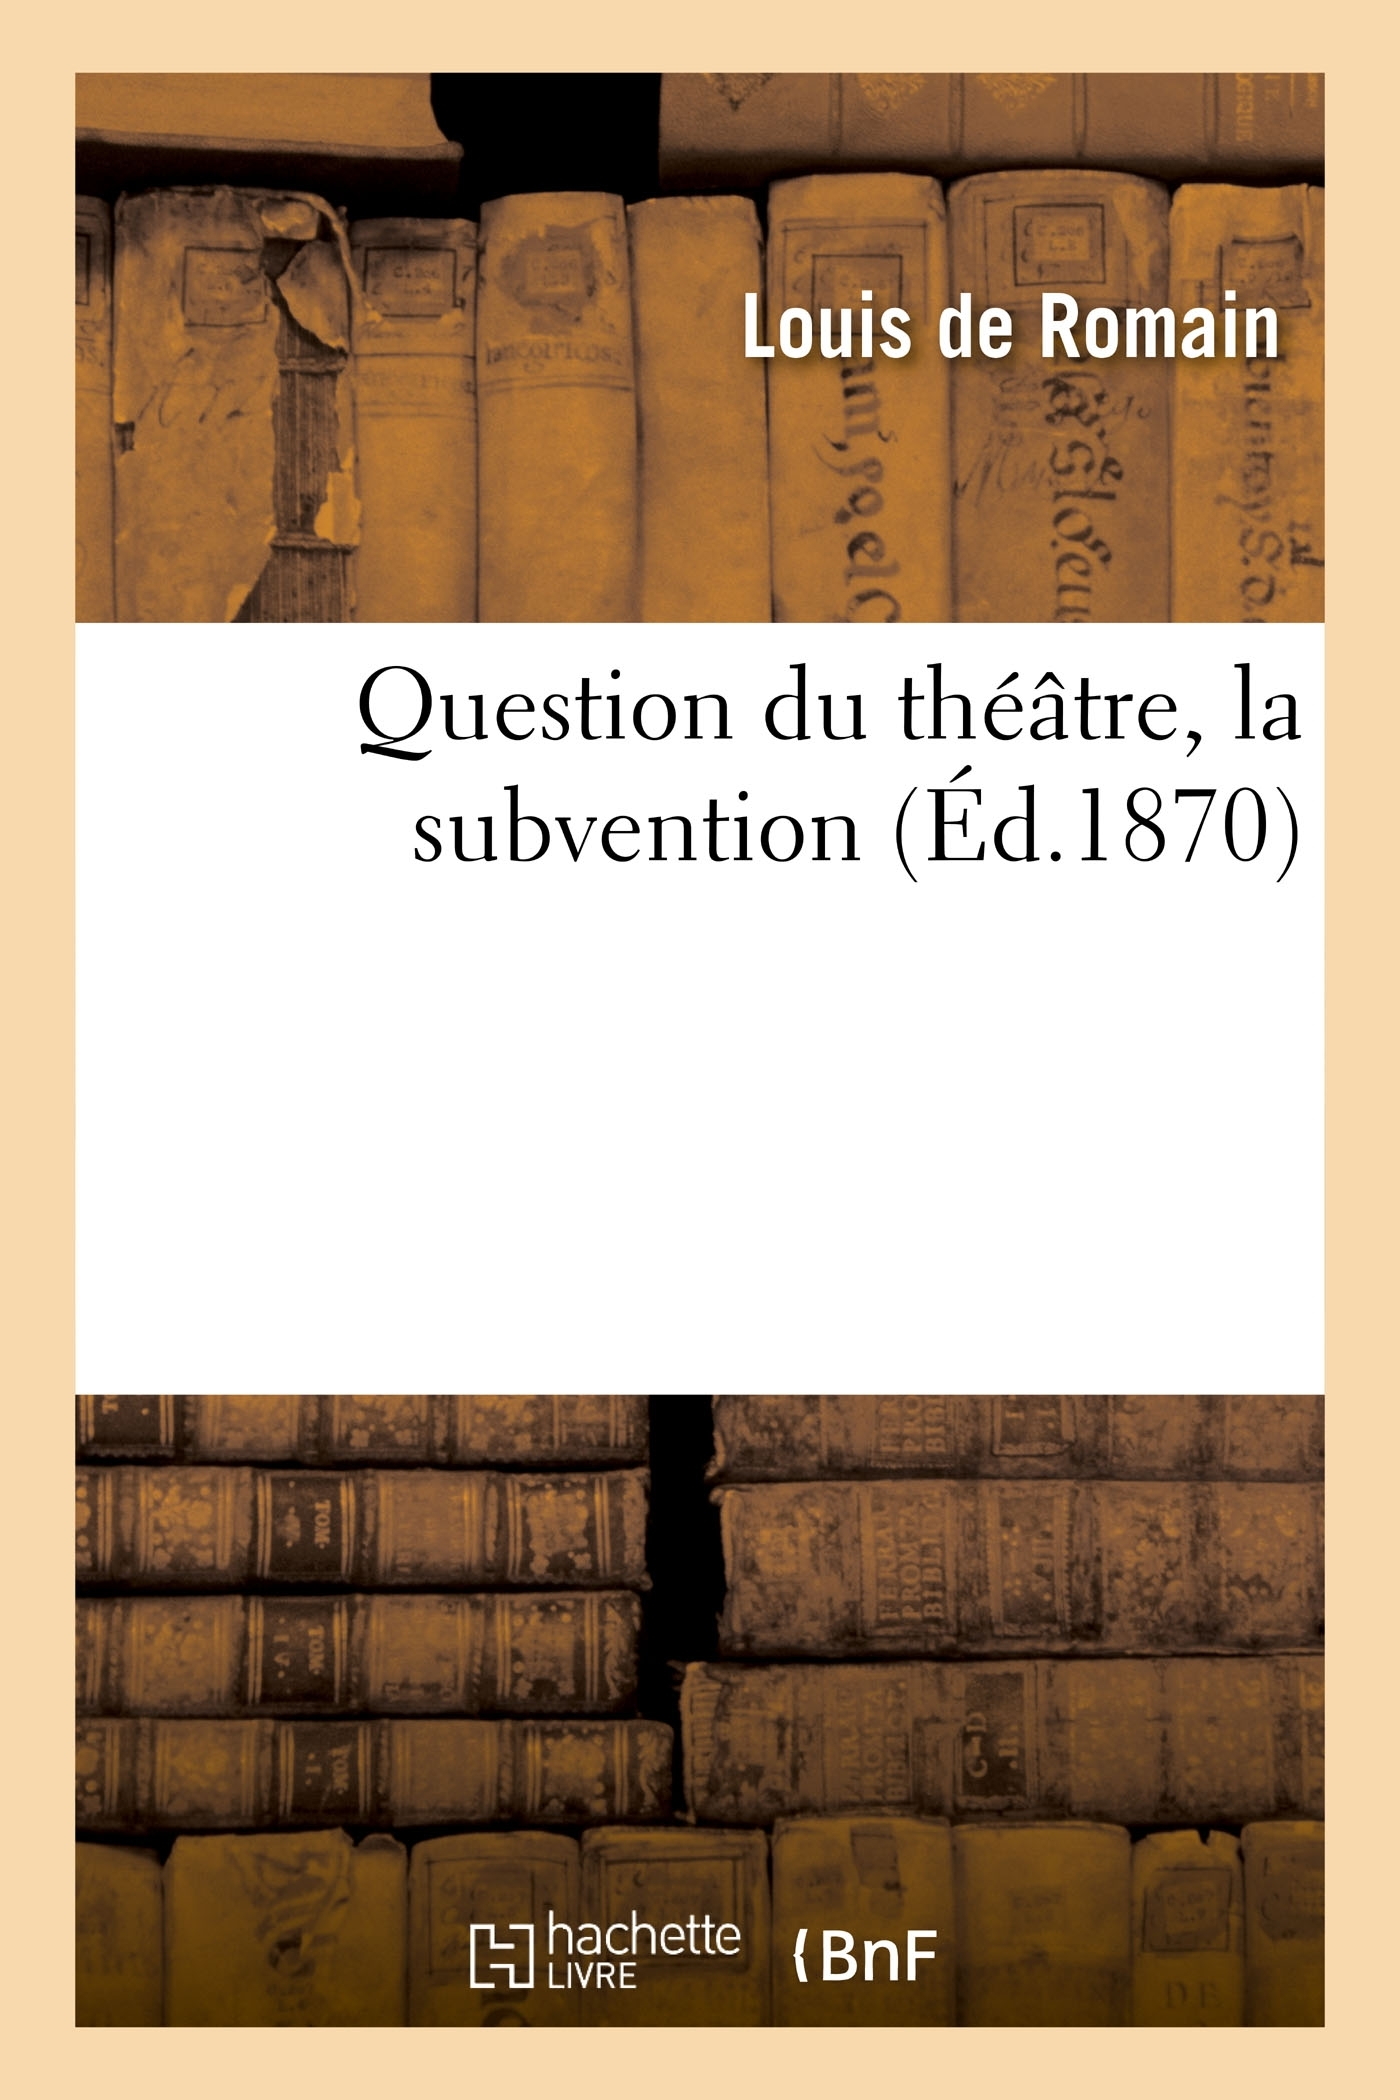 QUESTION DU THEATRE, LA SUBVENTION